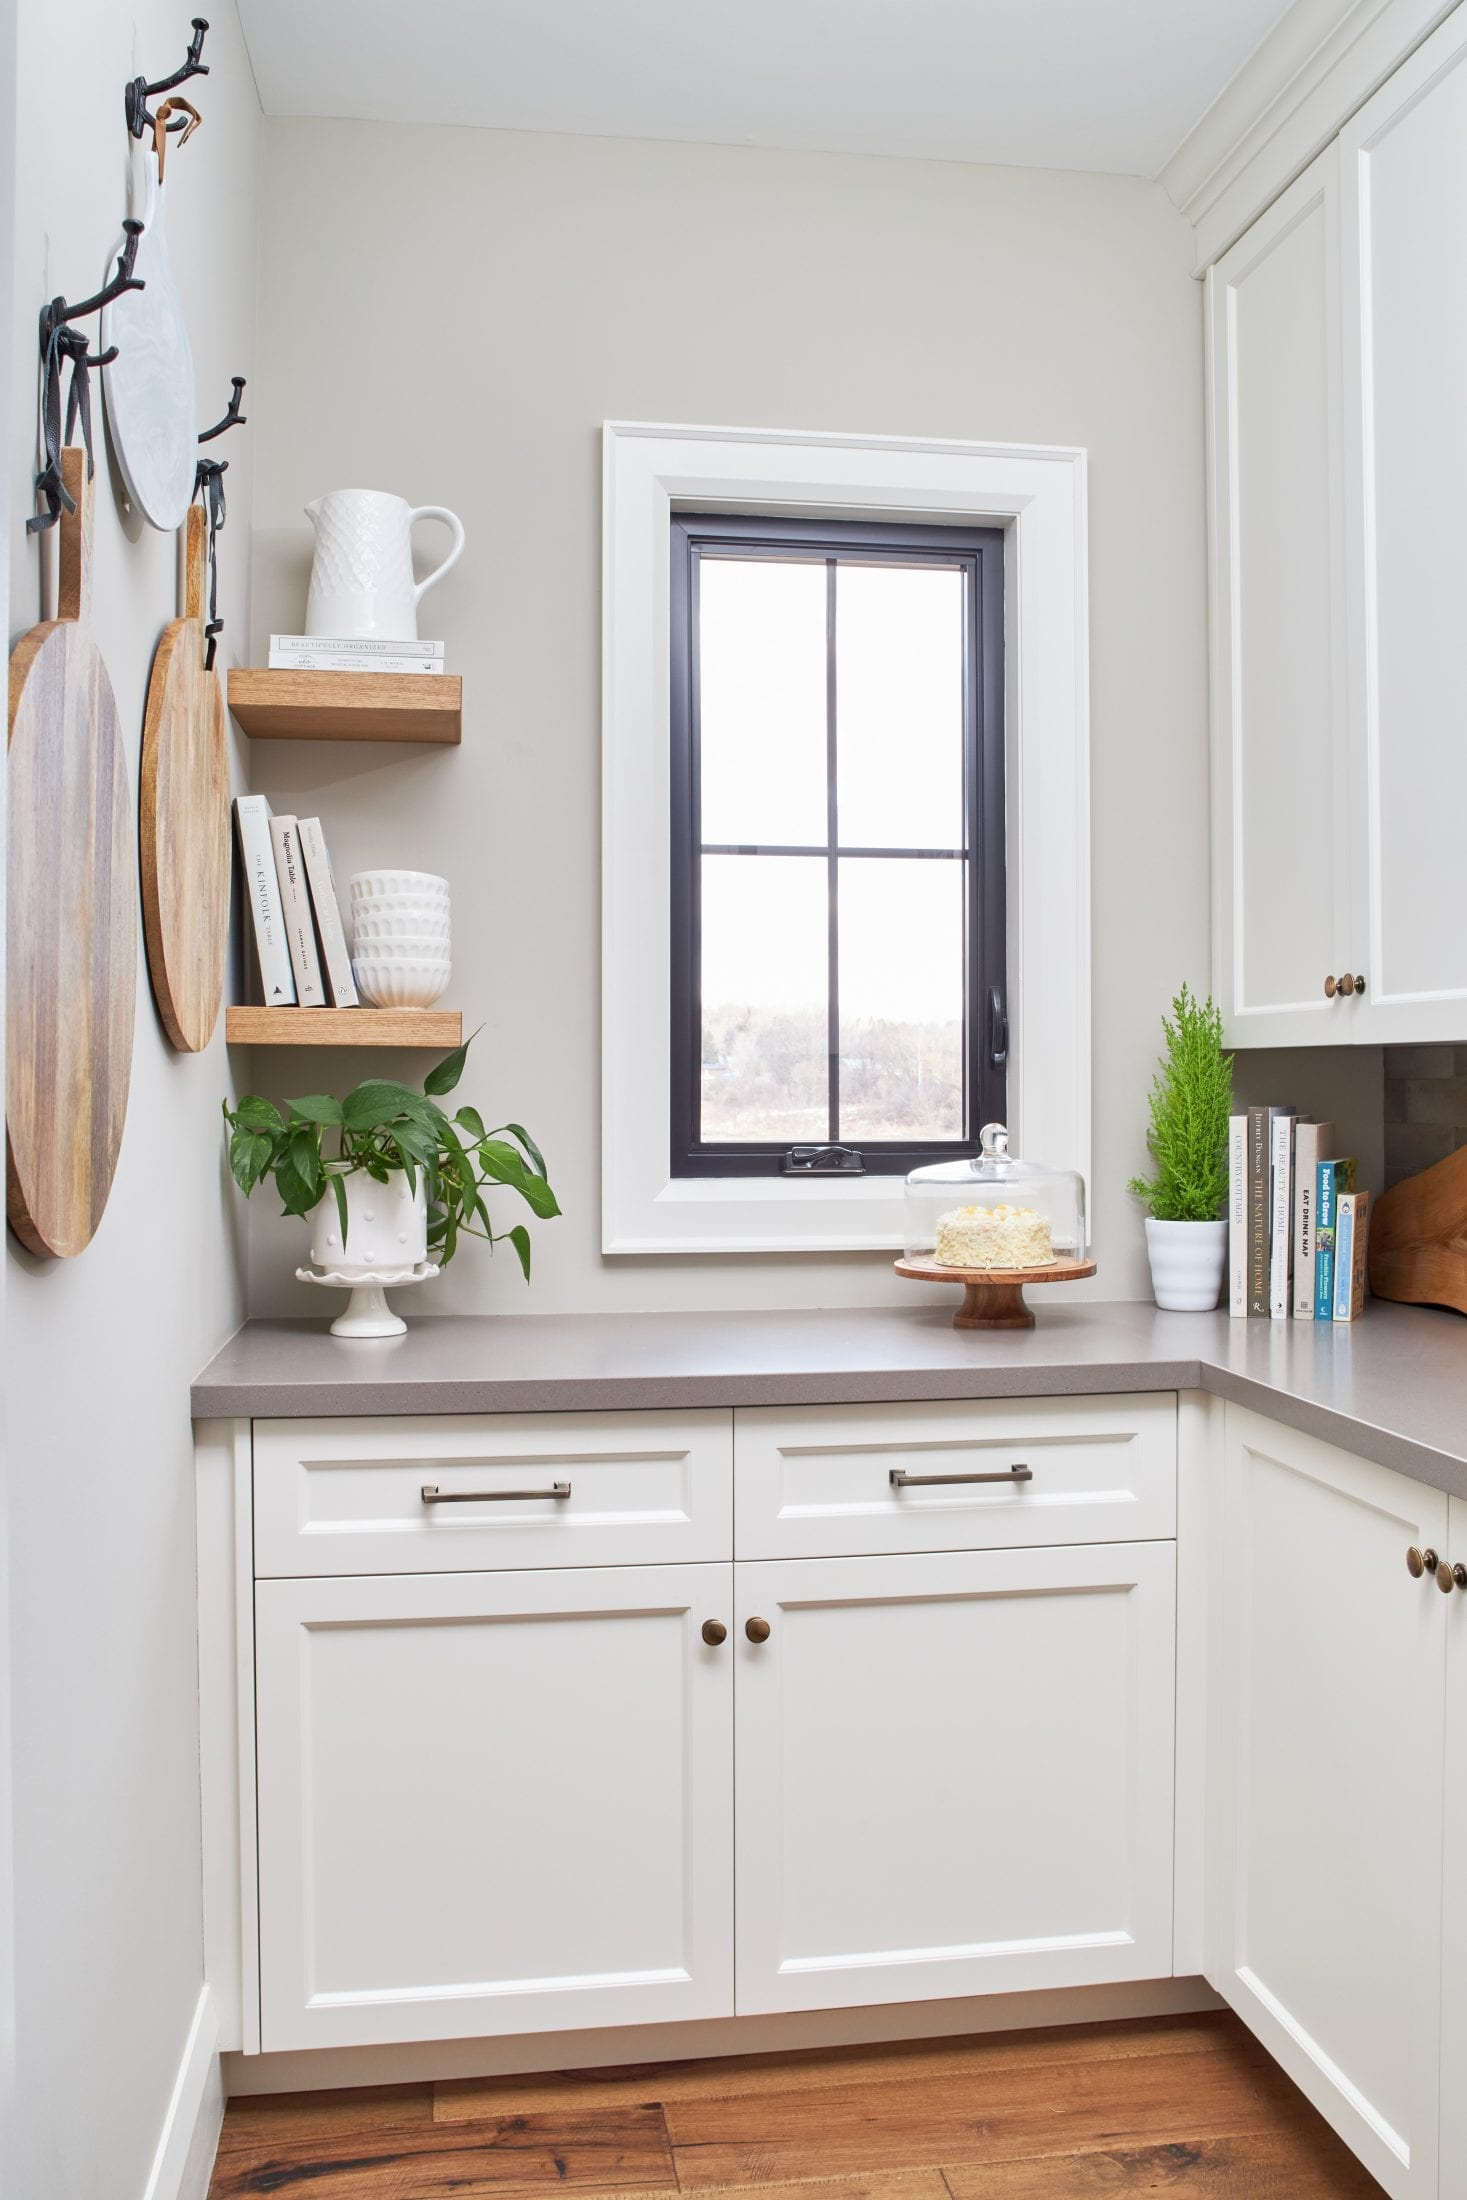 Pantry with black window and floating wood shelves